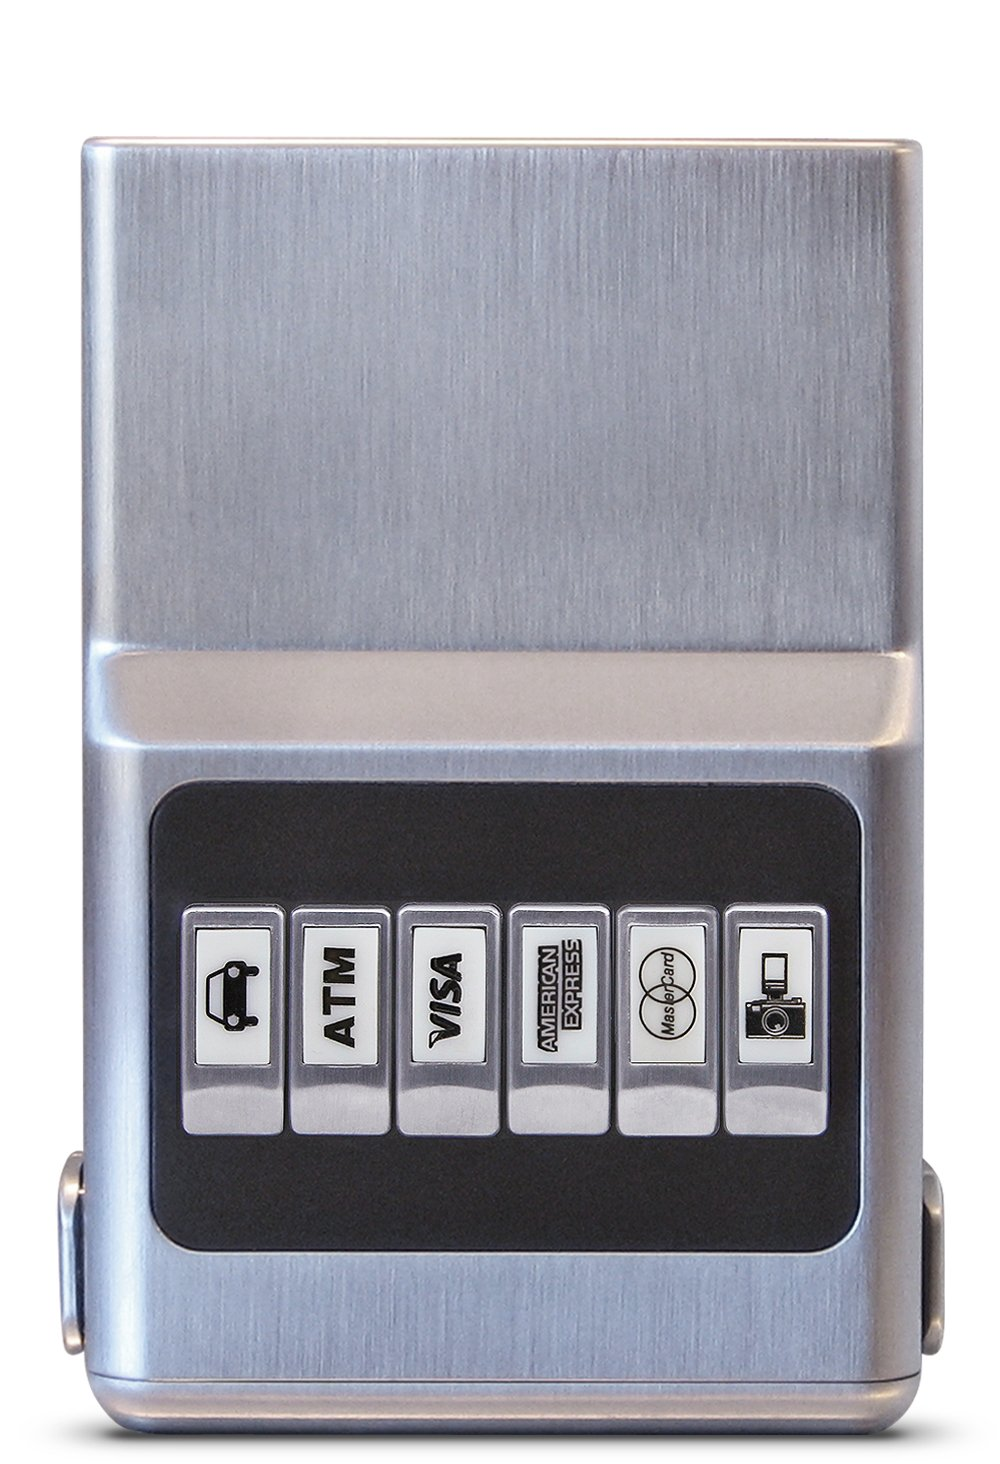 ACM Wallet Credit Card Holder - Front Pocket Organizer, Easy Push Button Use (Chrome Silver RFID)